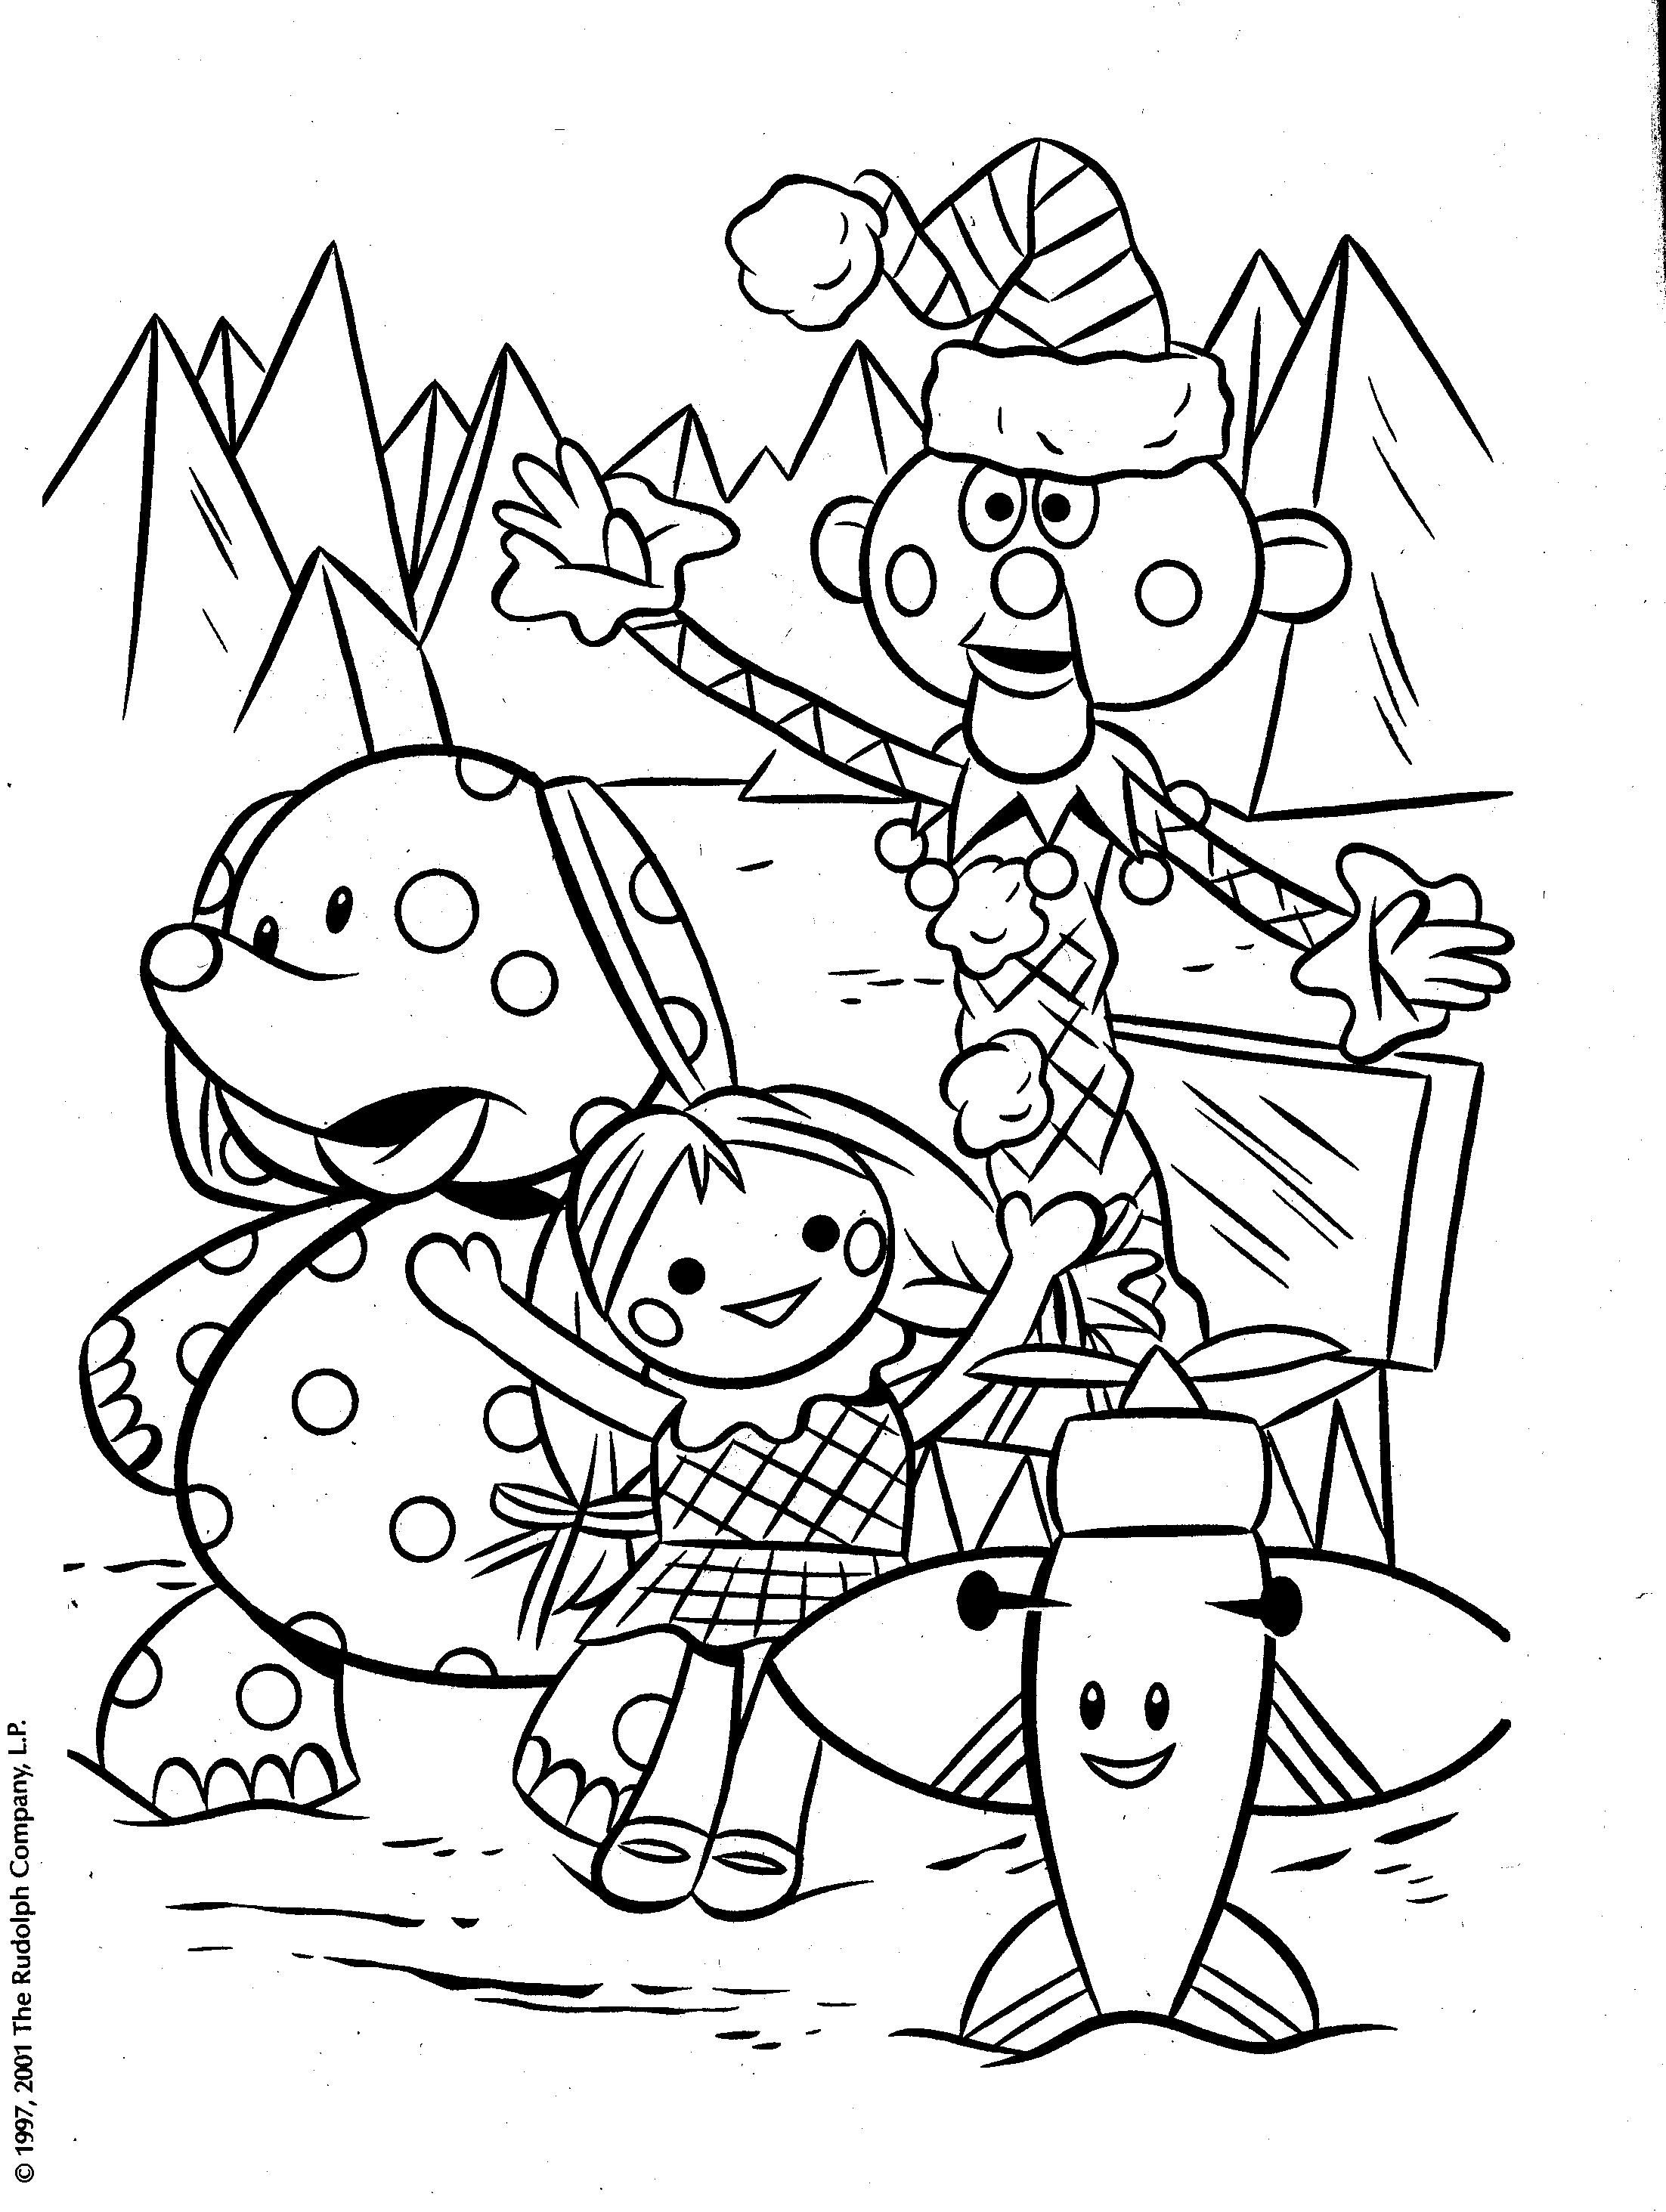 Christmas Coloring Pages Reindeer With Rudolph Misfit Toys Grammy Picks Pinterest